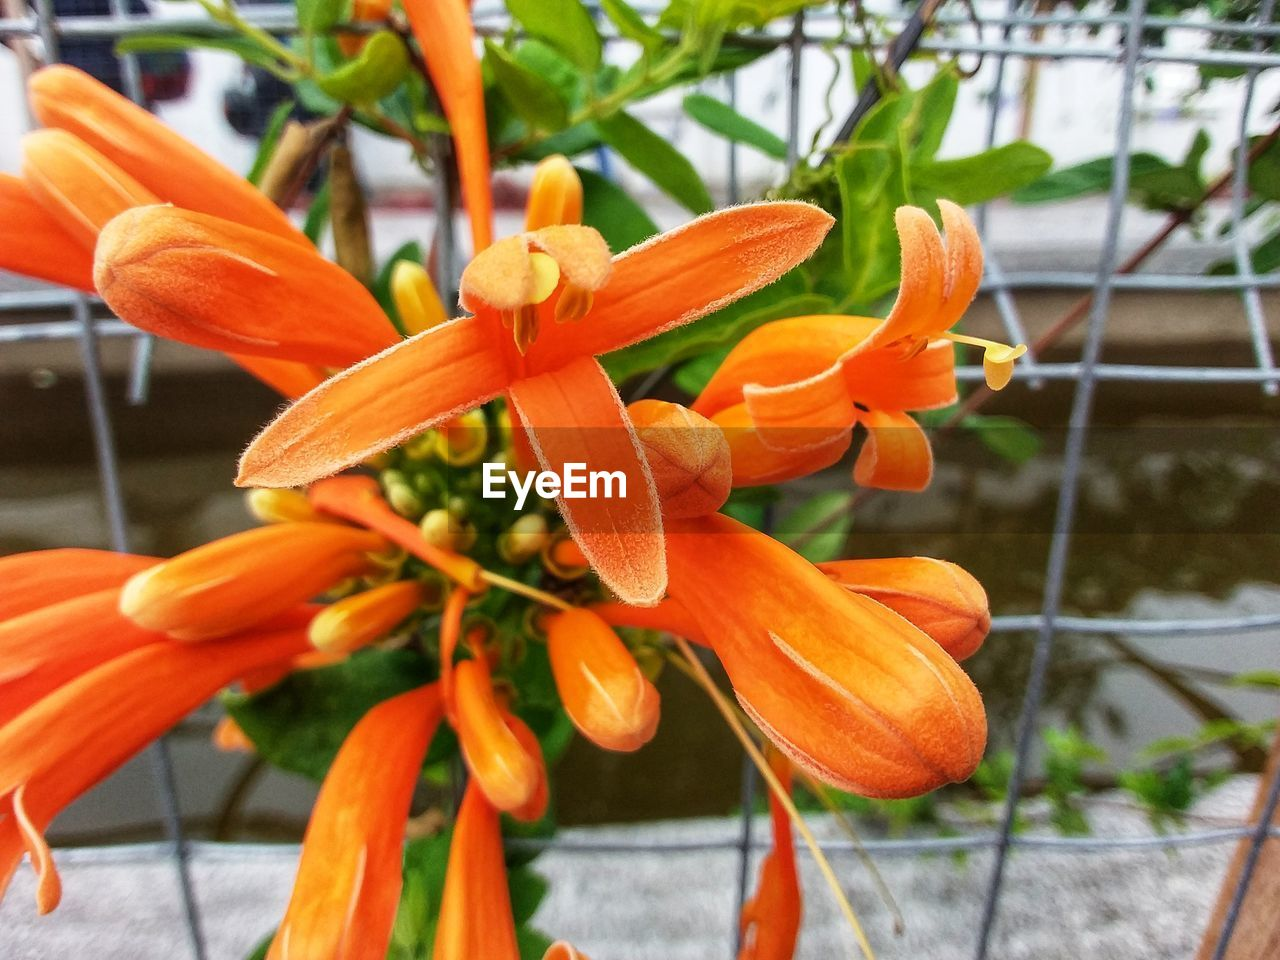 plant, flowering plant, flower, freshness, orange color, growth, vulnerability, fragility, beauty in nature, petal, close-up, flower head, focus on foreground, inflorescence, no people, day, botany, lily, nature, pollen, outdoors, orange